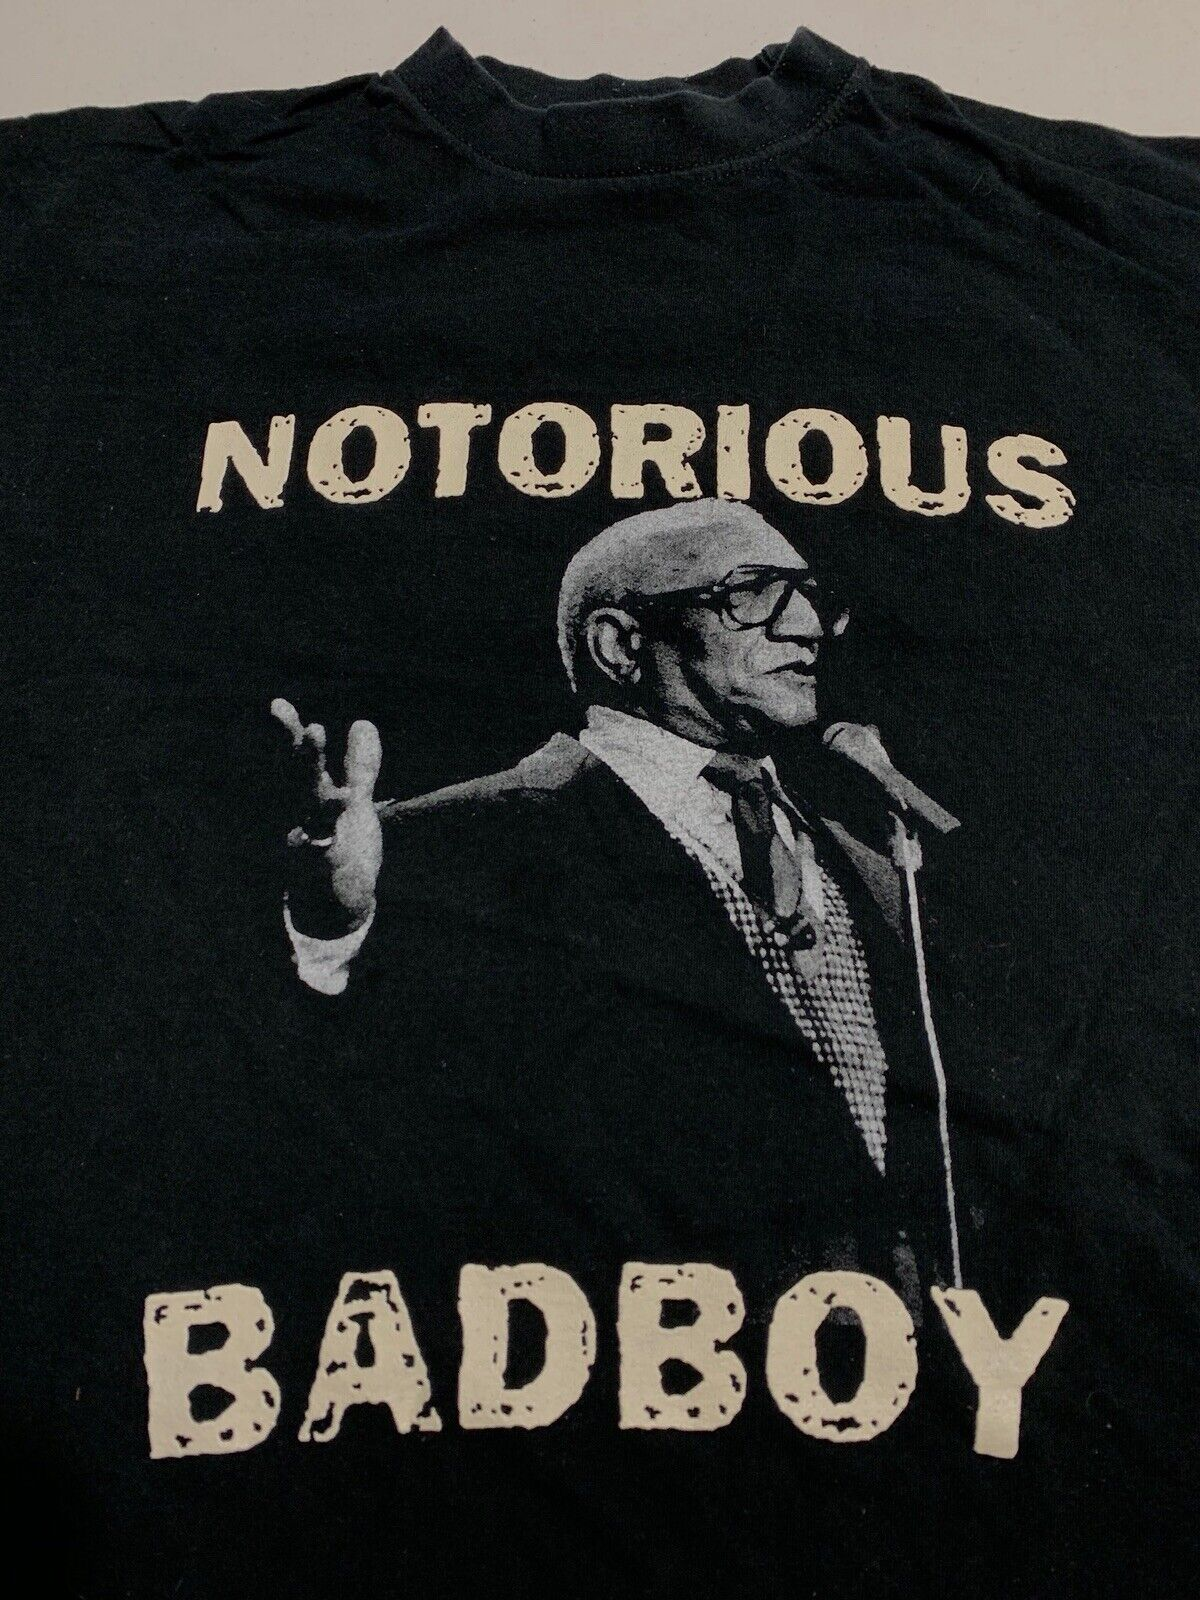 93 Red Foxx Notorious Bad Boy Sanford & Son T-shirt Fred Sanford Comedian Large